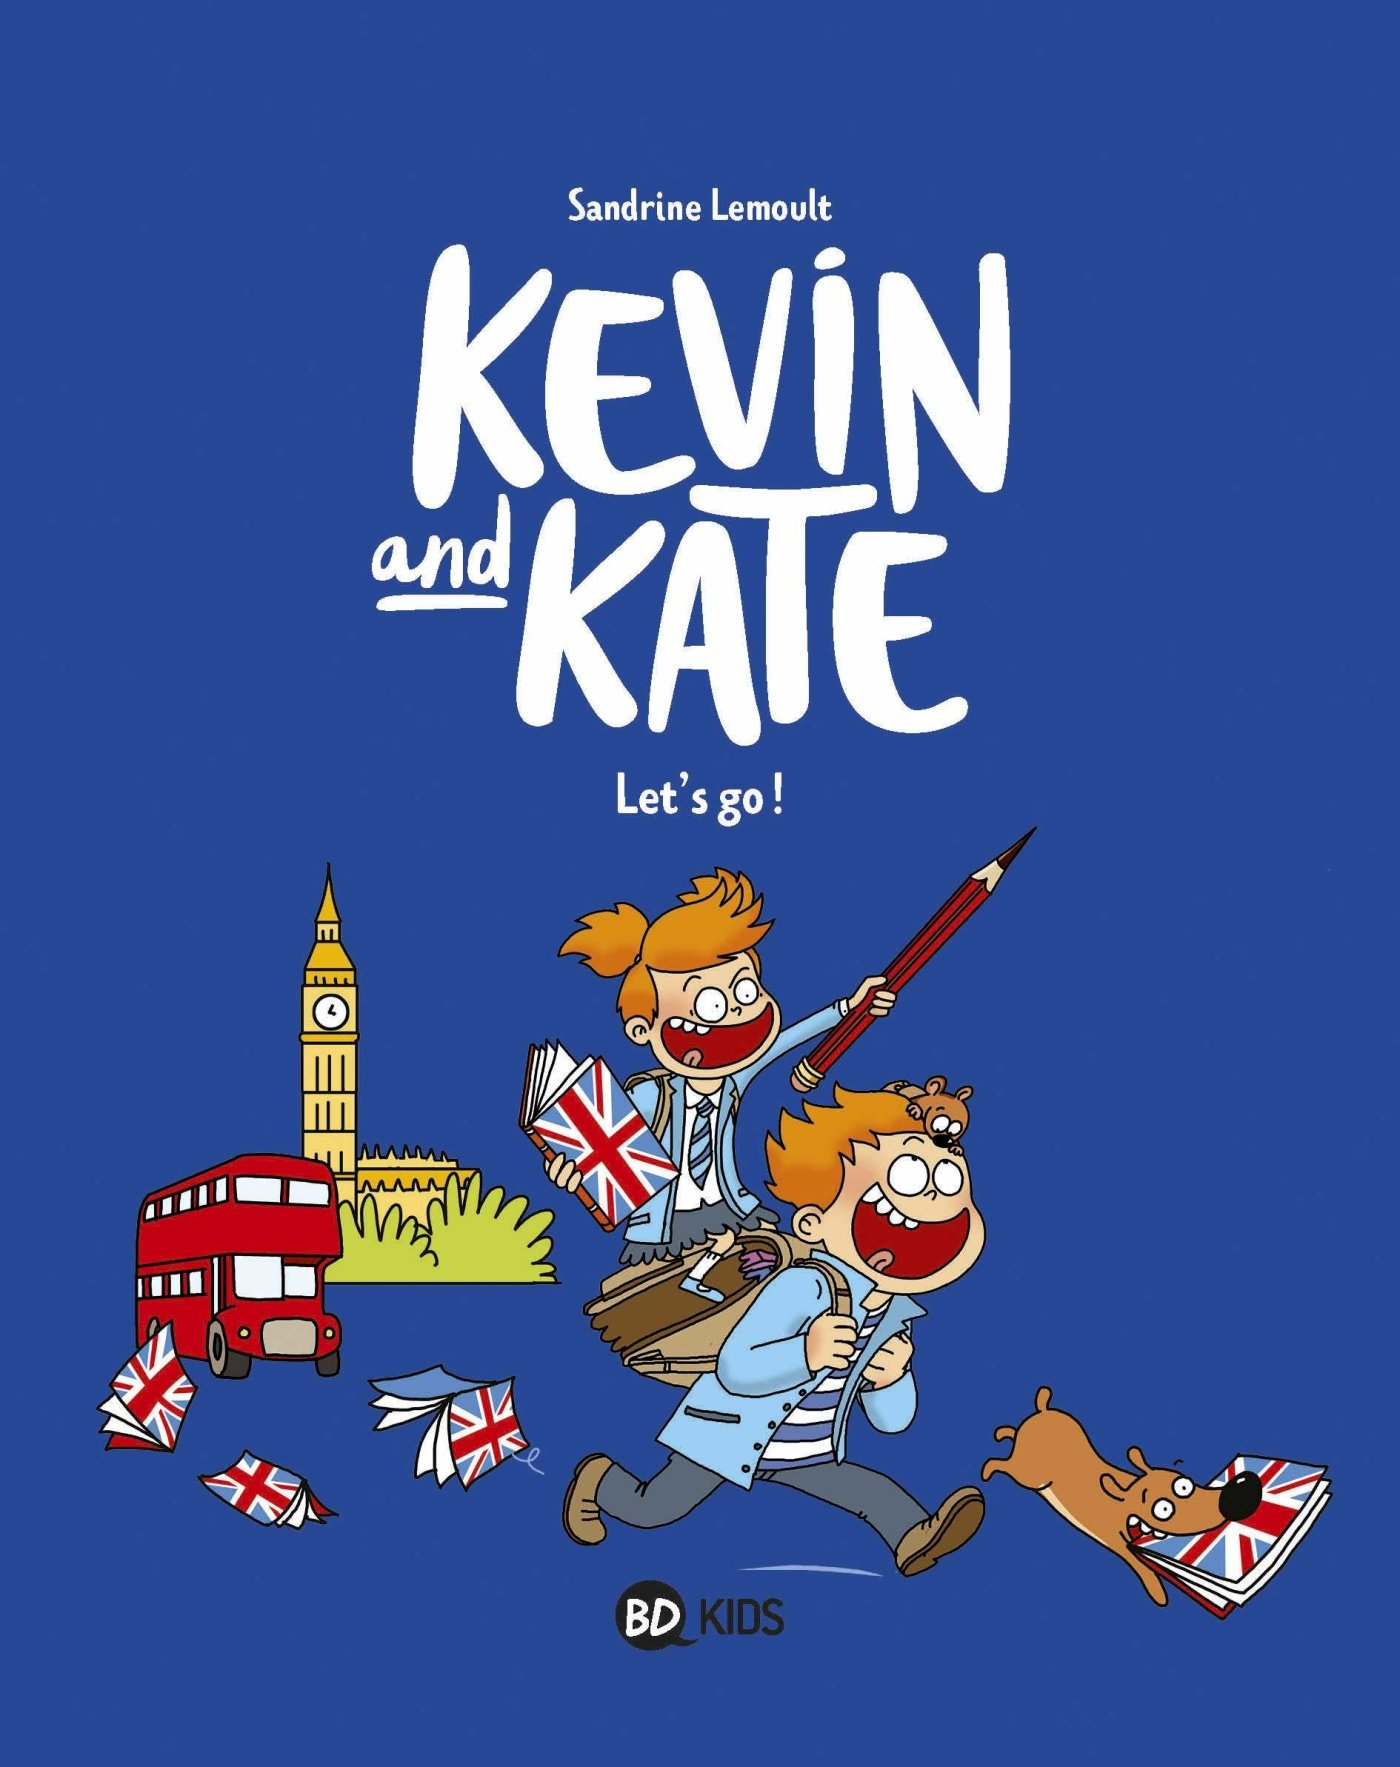 Kevin and kate 1 - Let's go !